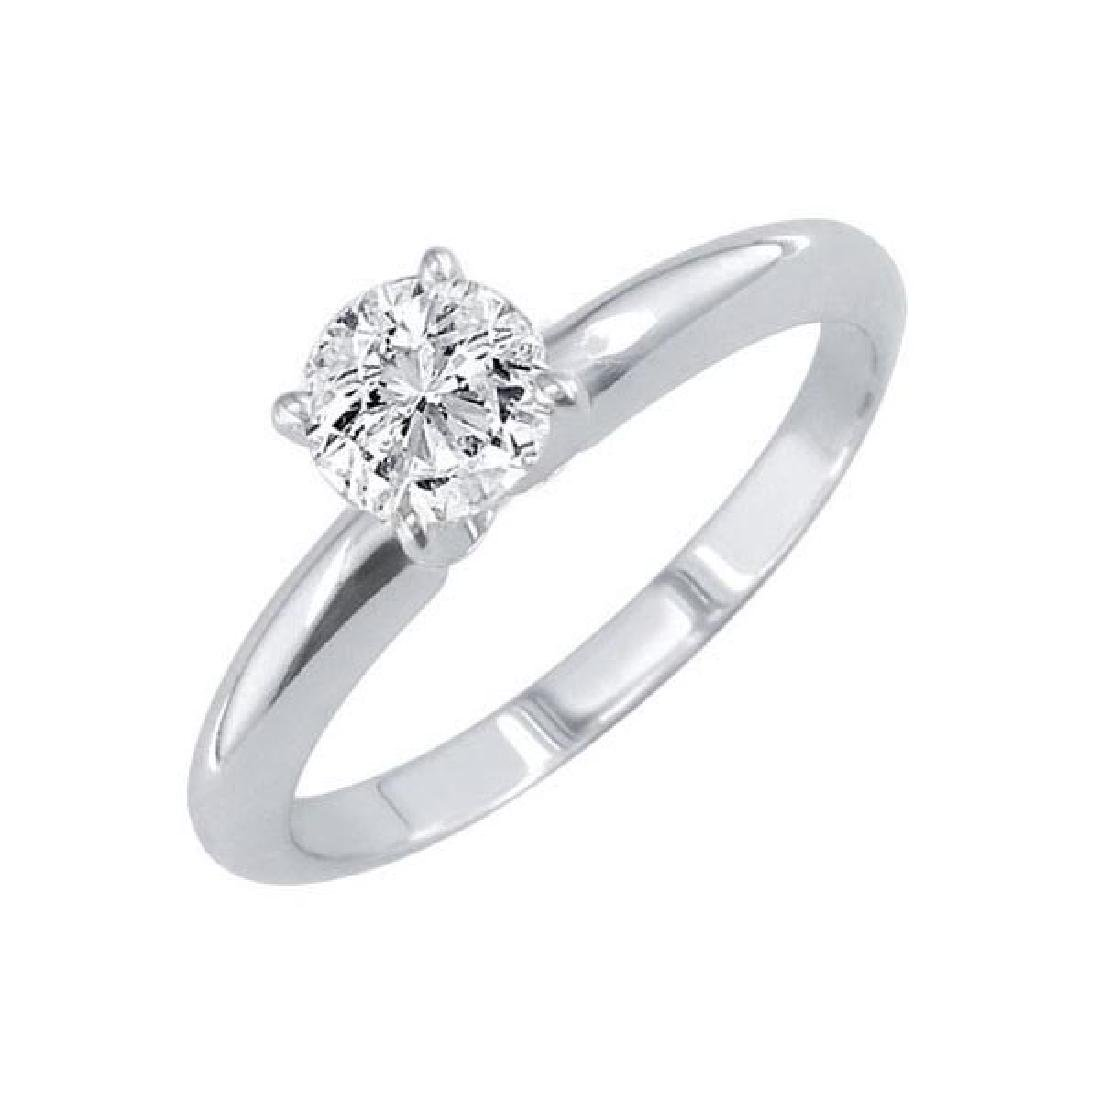 Certified 0.71 CTW Round Diamond Solitaire 14k Ring G/S